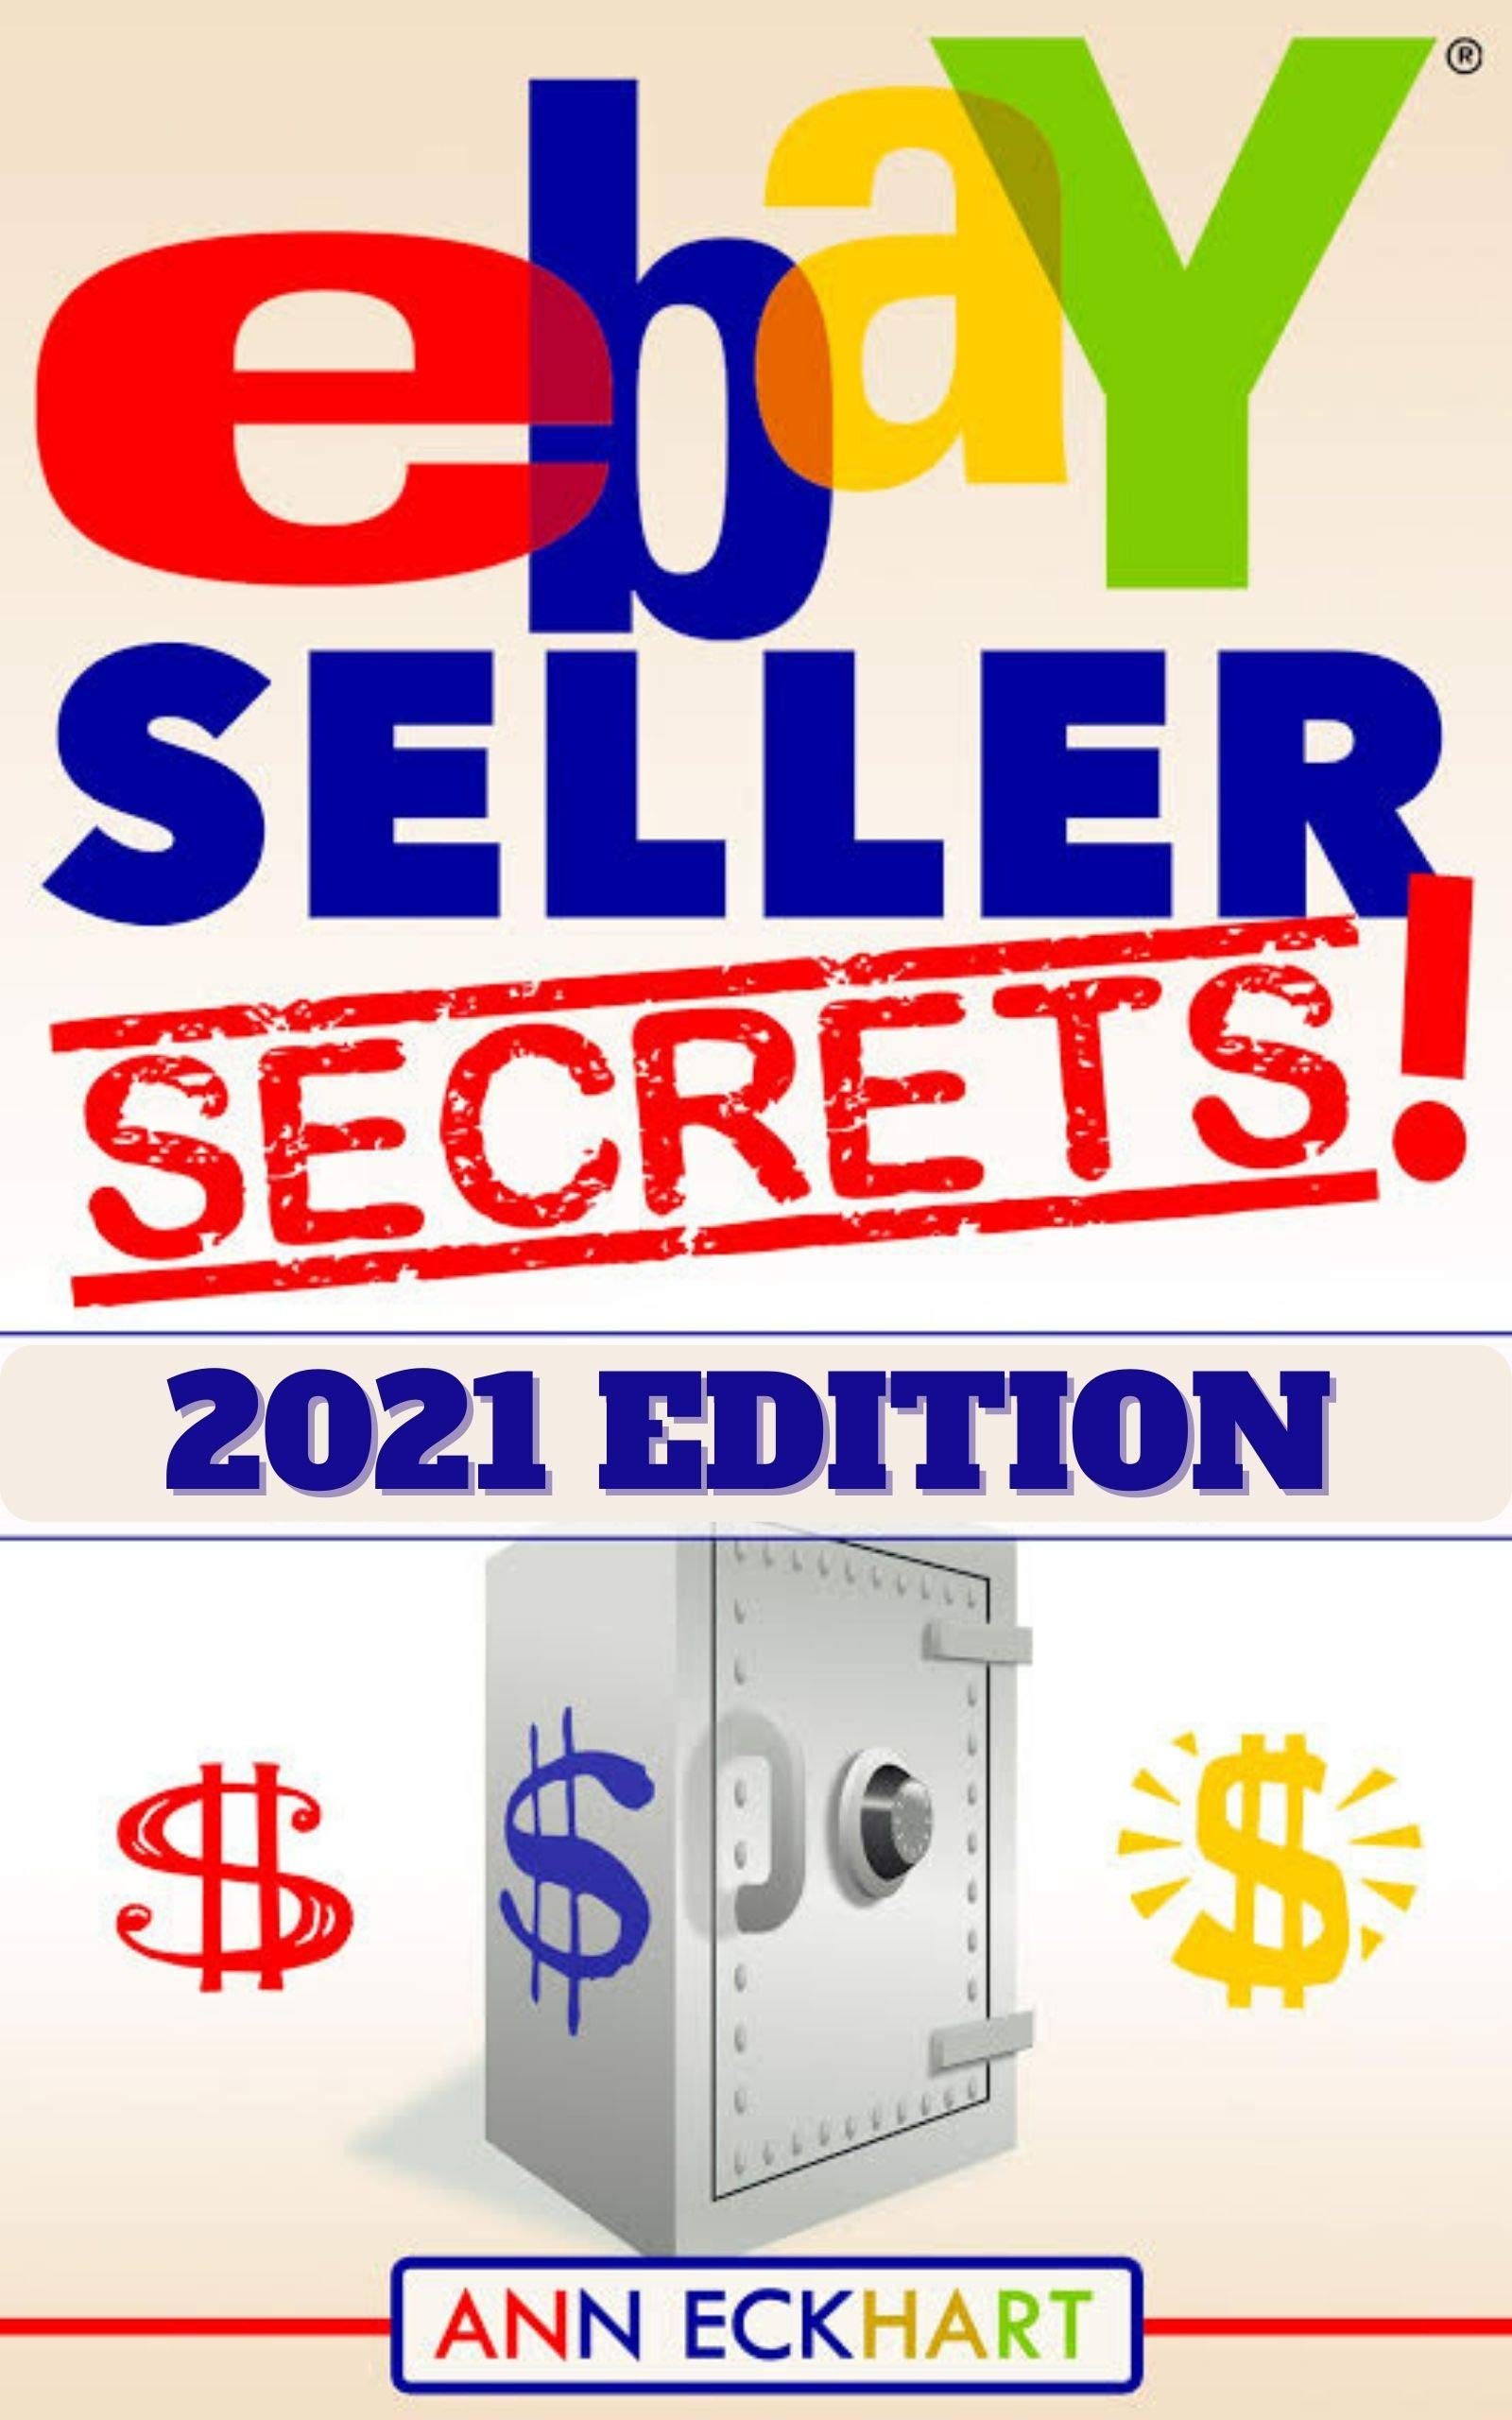 Ebay Seller Secrets 2021 Edition w/ Liquidation Sources: Tips & Tricks To Help You Take Your Reselling Business To The Next Level (2021 Reselling, Ebay & YouTube Books Book 2)